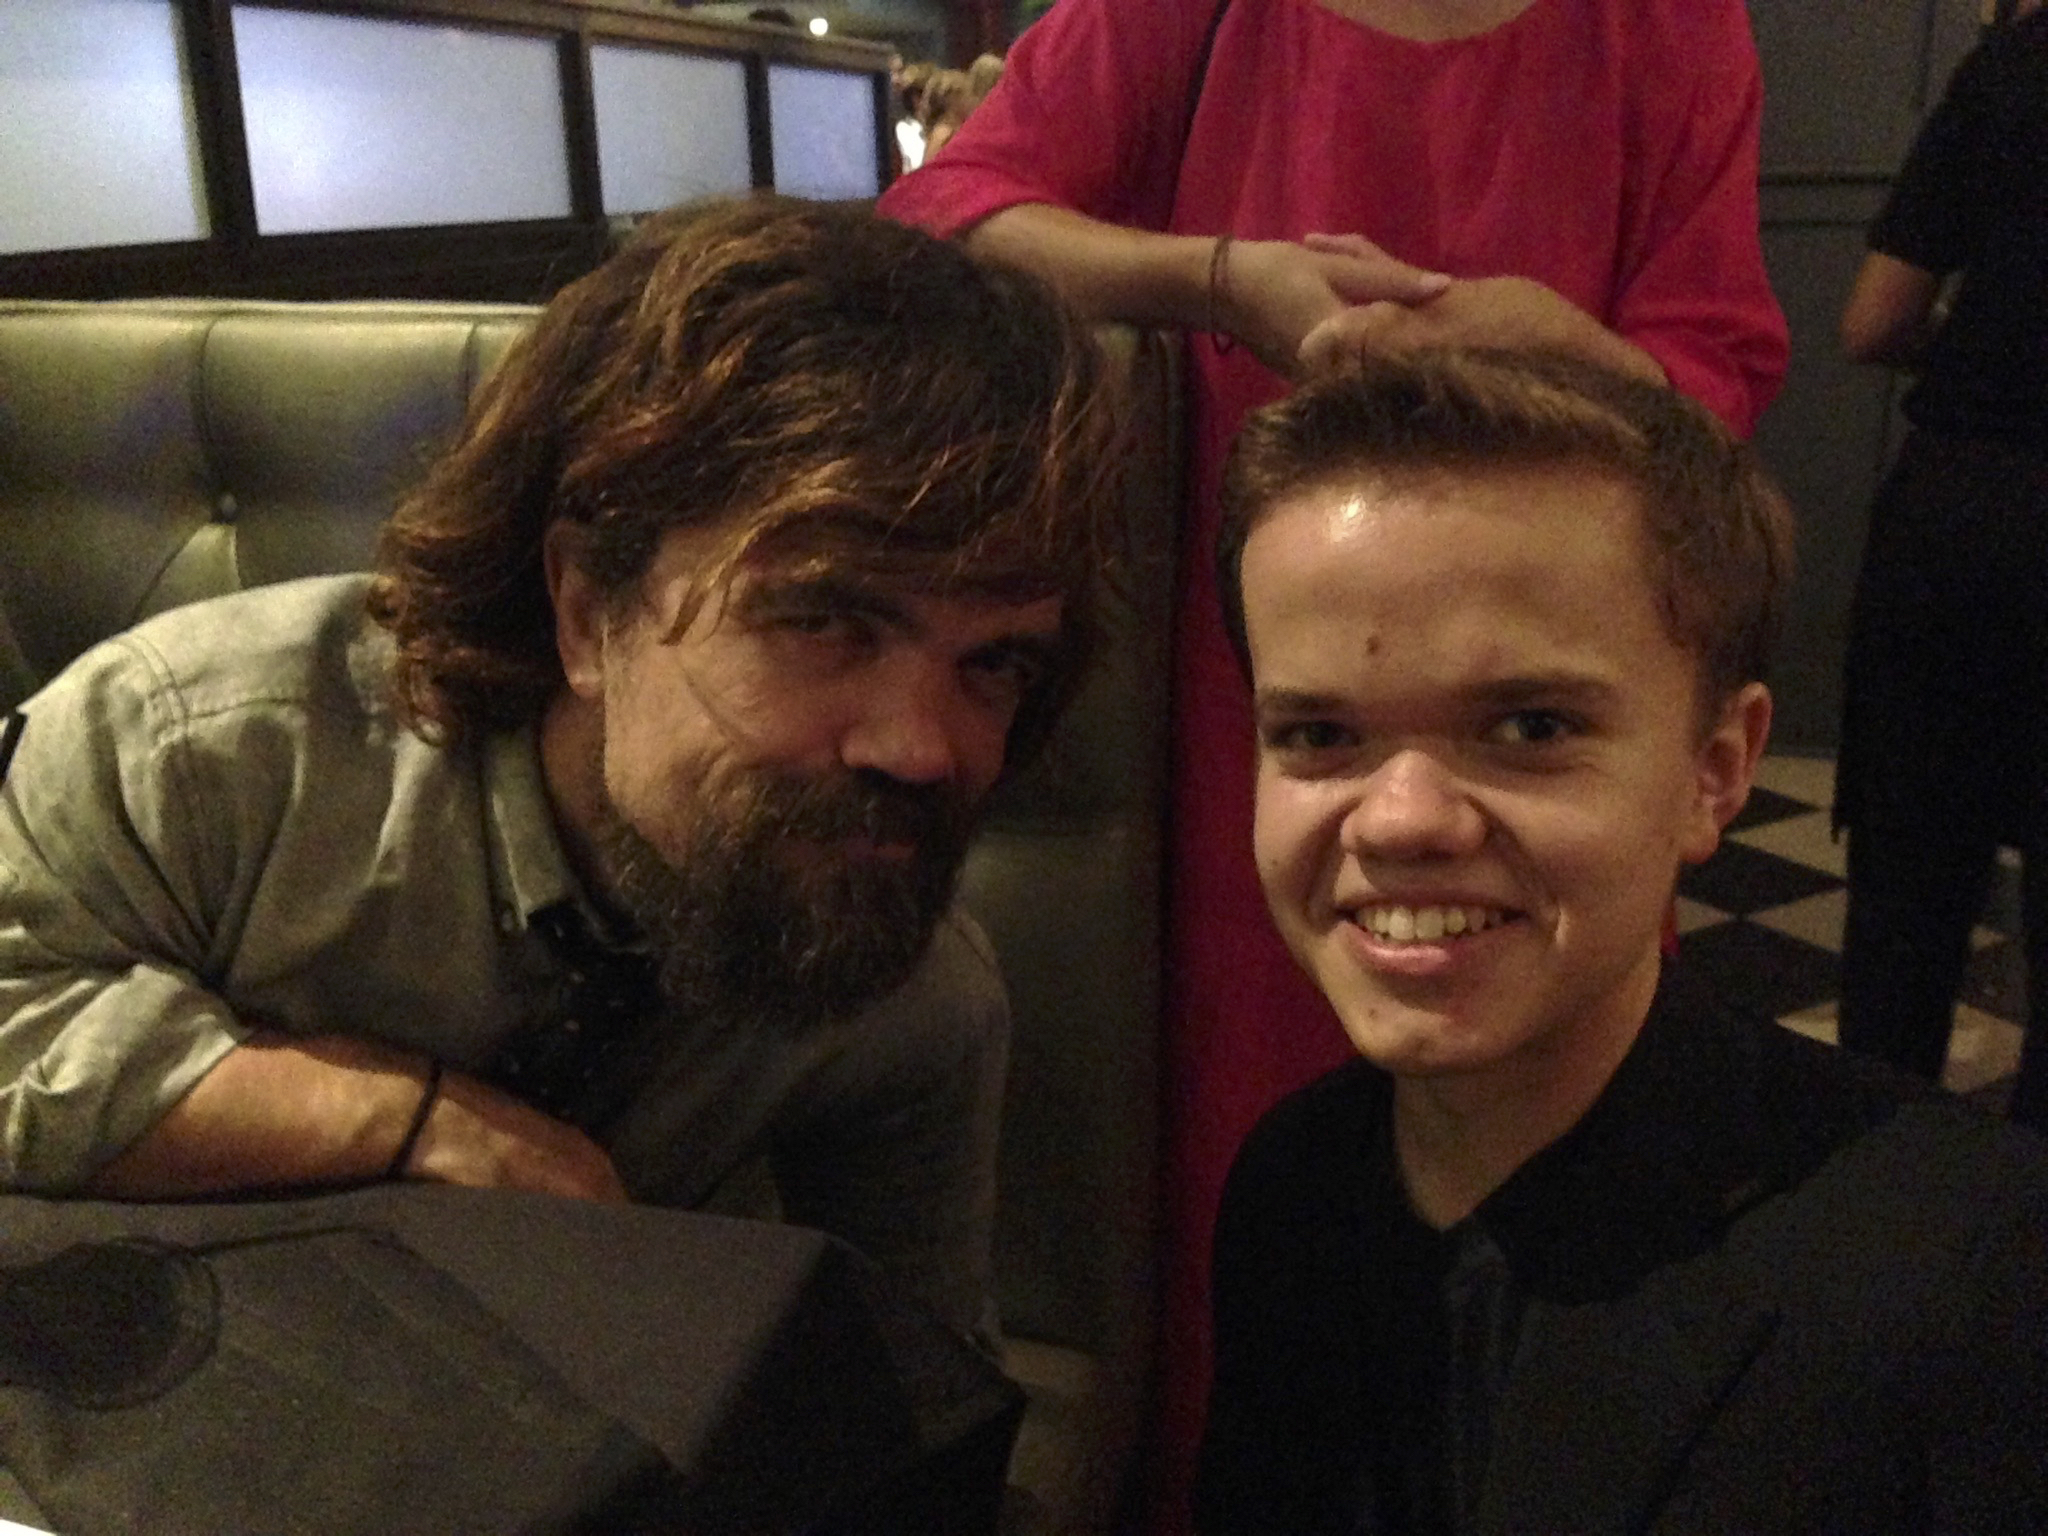 Peter Dinklage at the premiere